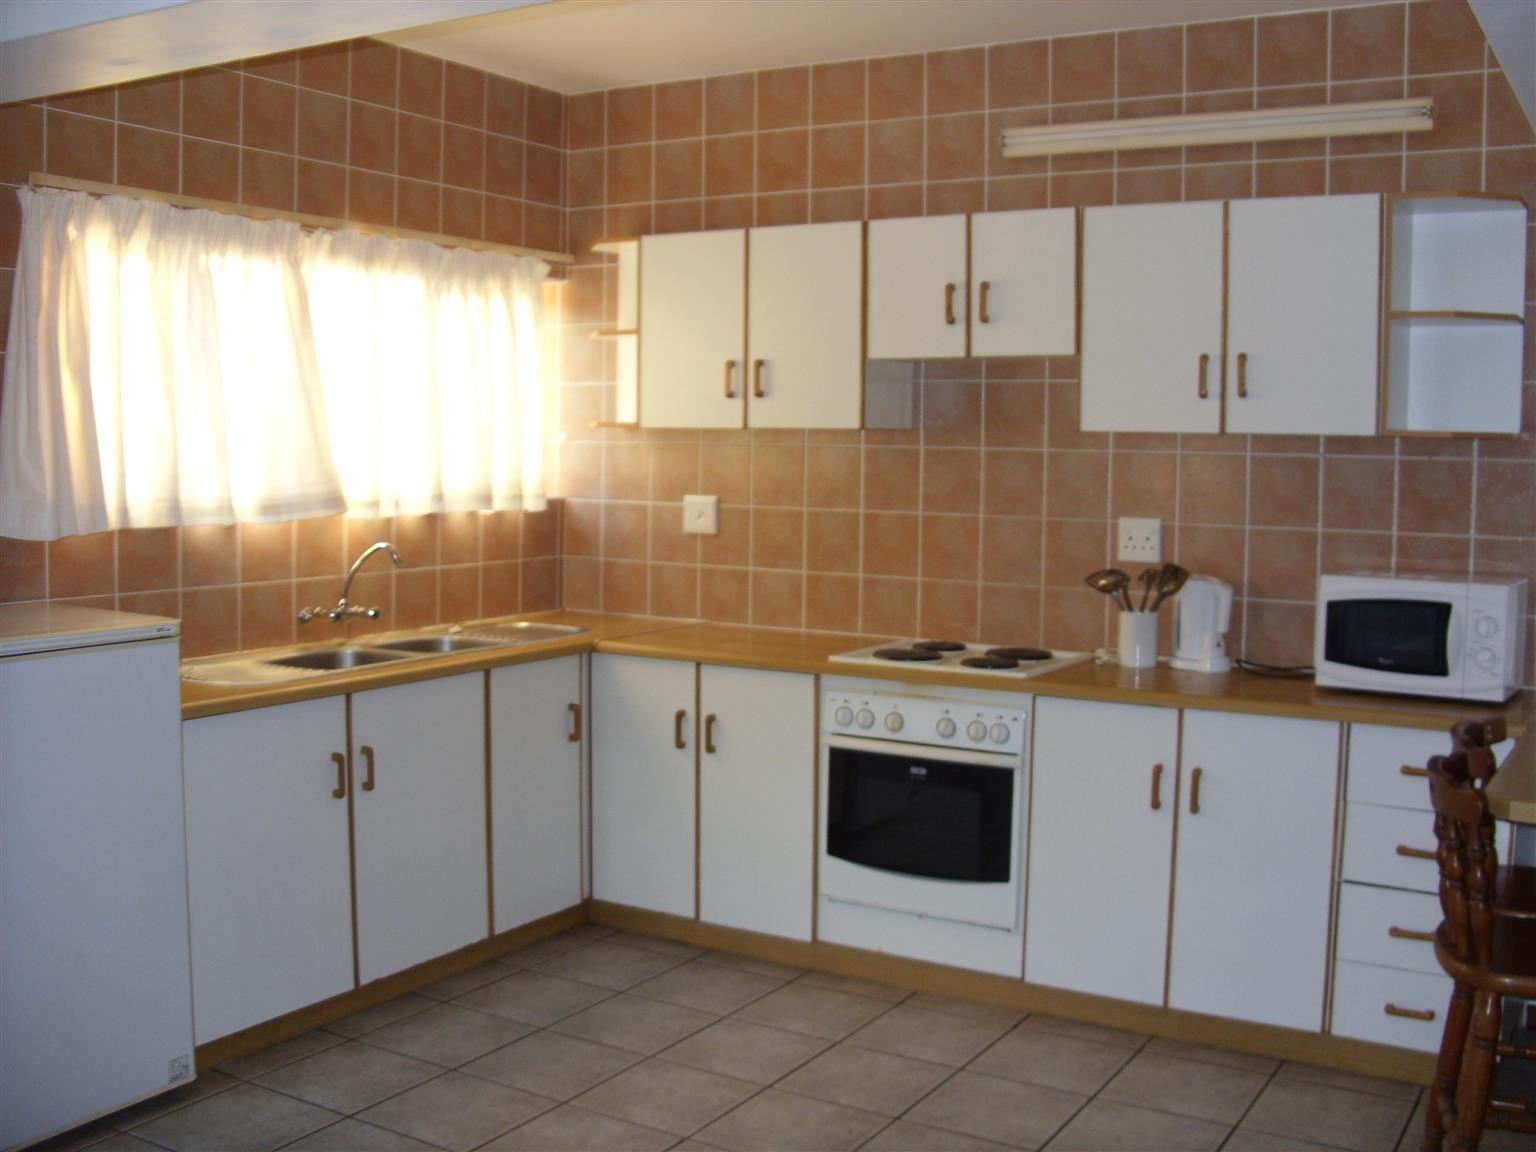 GOOD ROI – INCOME PAYS A 100% BOND - BLOCK OF FLATS FOR SALE UVONGO R2,550,000 – FIVE – 1, 2, AND 3 BEDROOM – SPACIOUS FULLY TENANTED FLATS